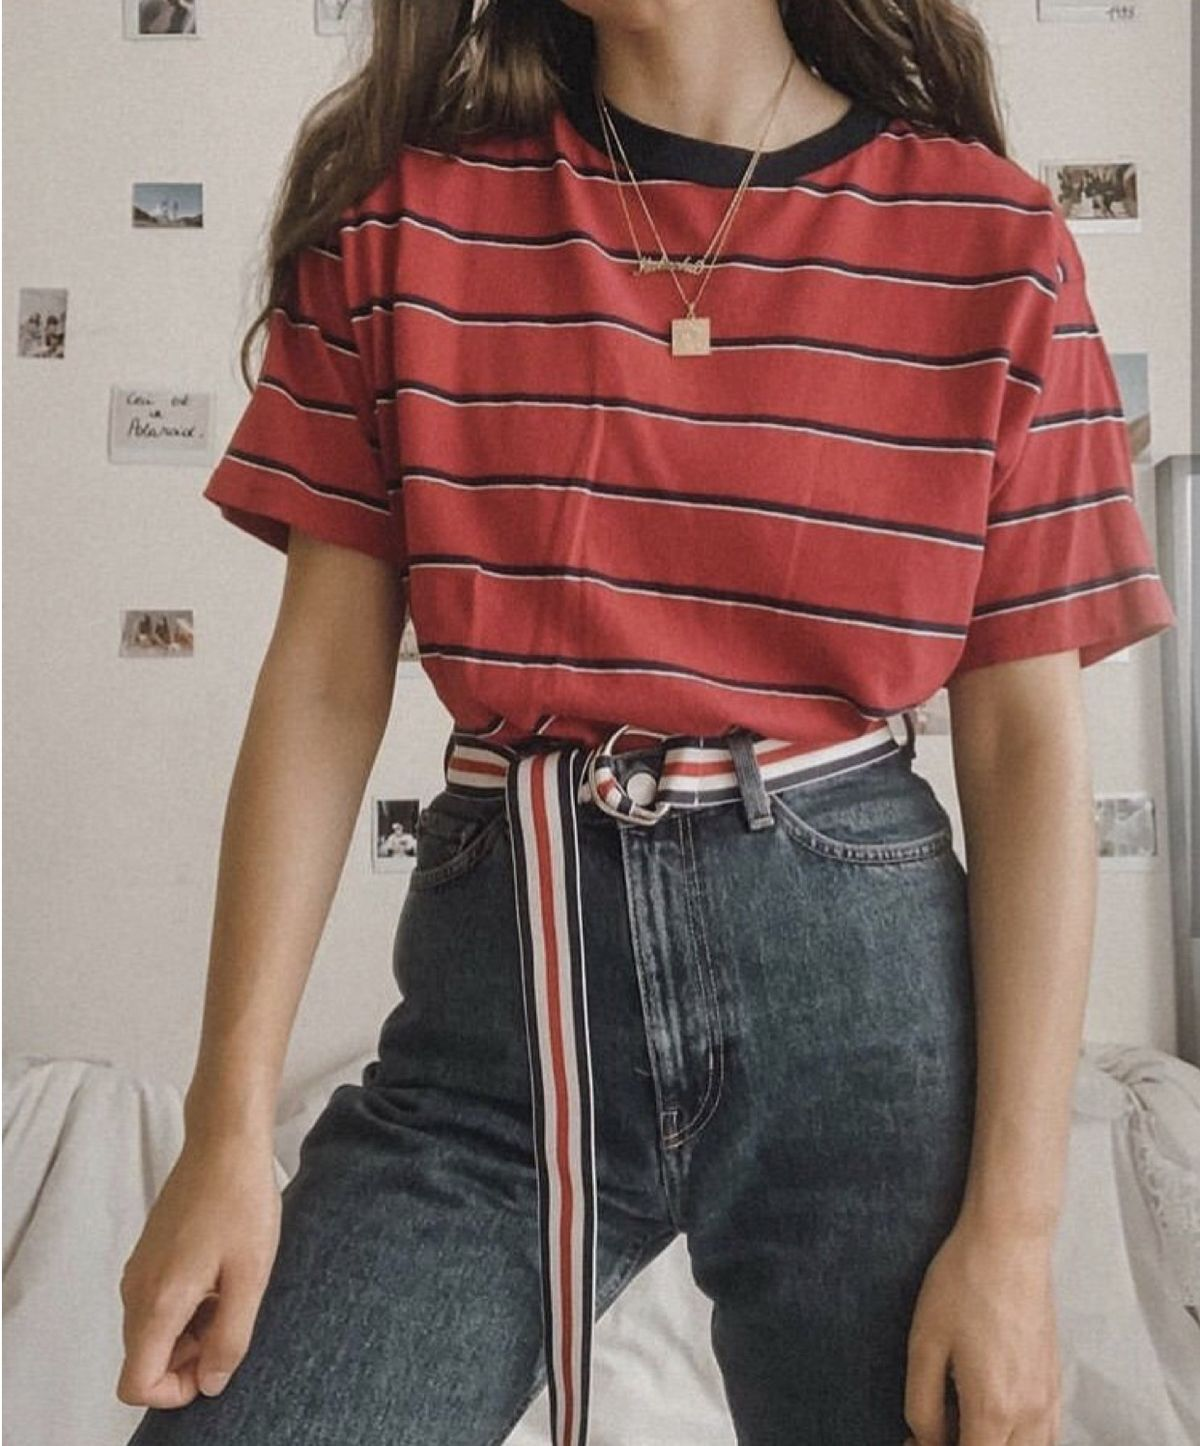 Edgy Aesthetic Outfit Edgy Aesthetic In 2020 Aesthetic Clothes Egirl Fashion Edgy Fashion